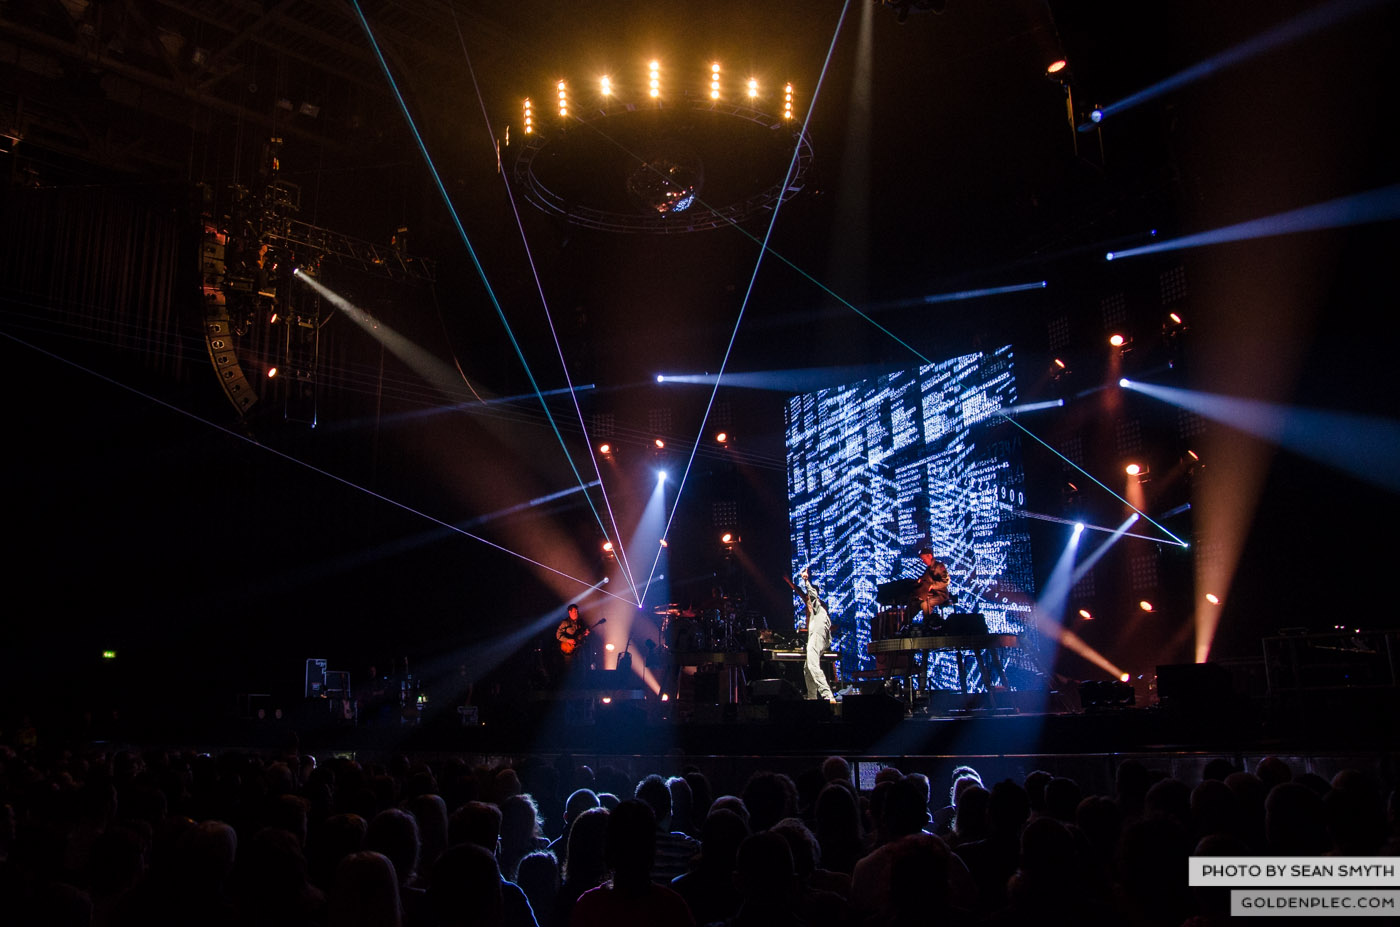 james-blunt-at-3arena-by-sean-smyth-20-11-14-15-of-29